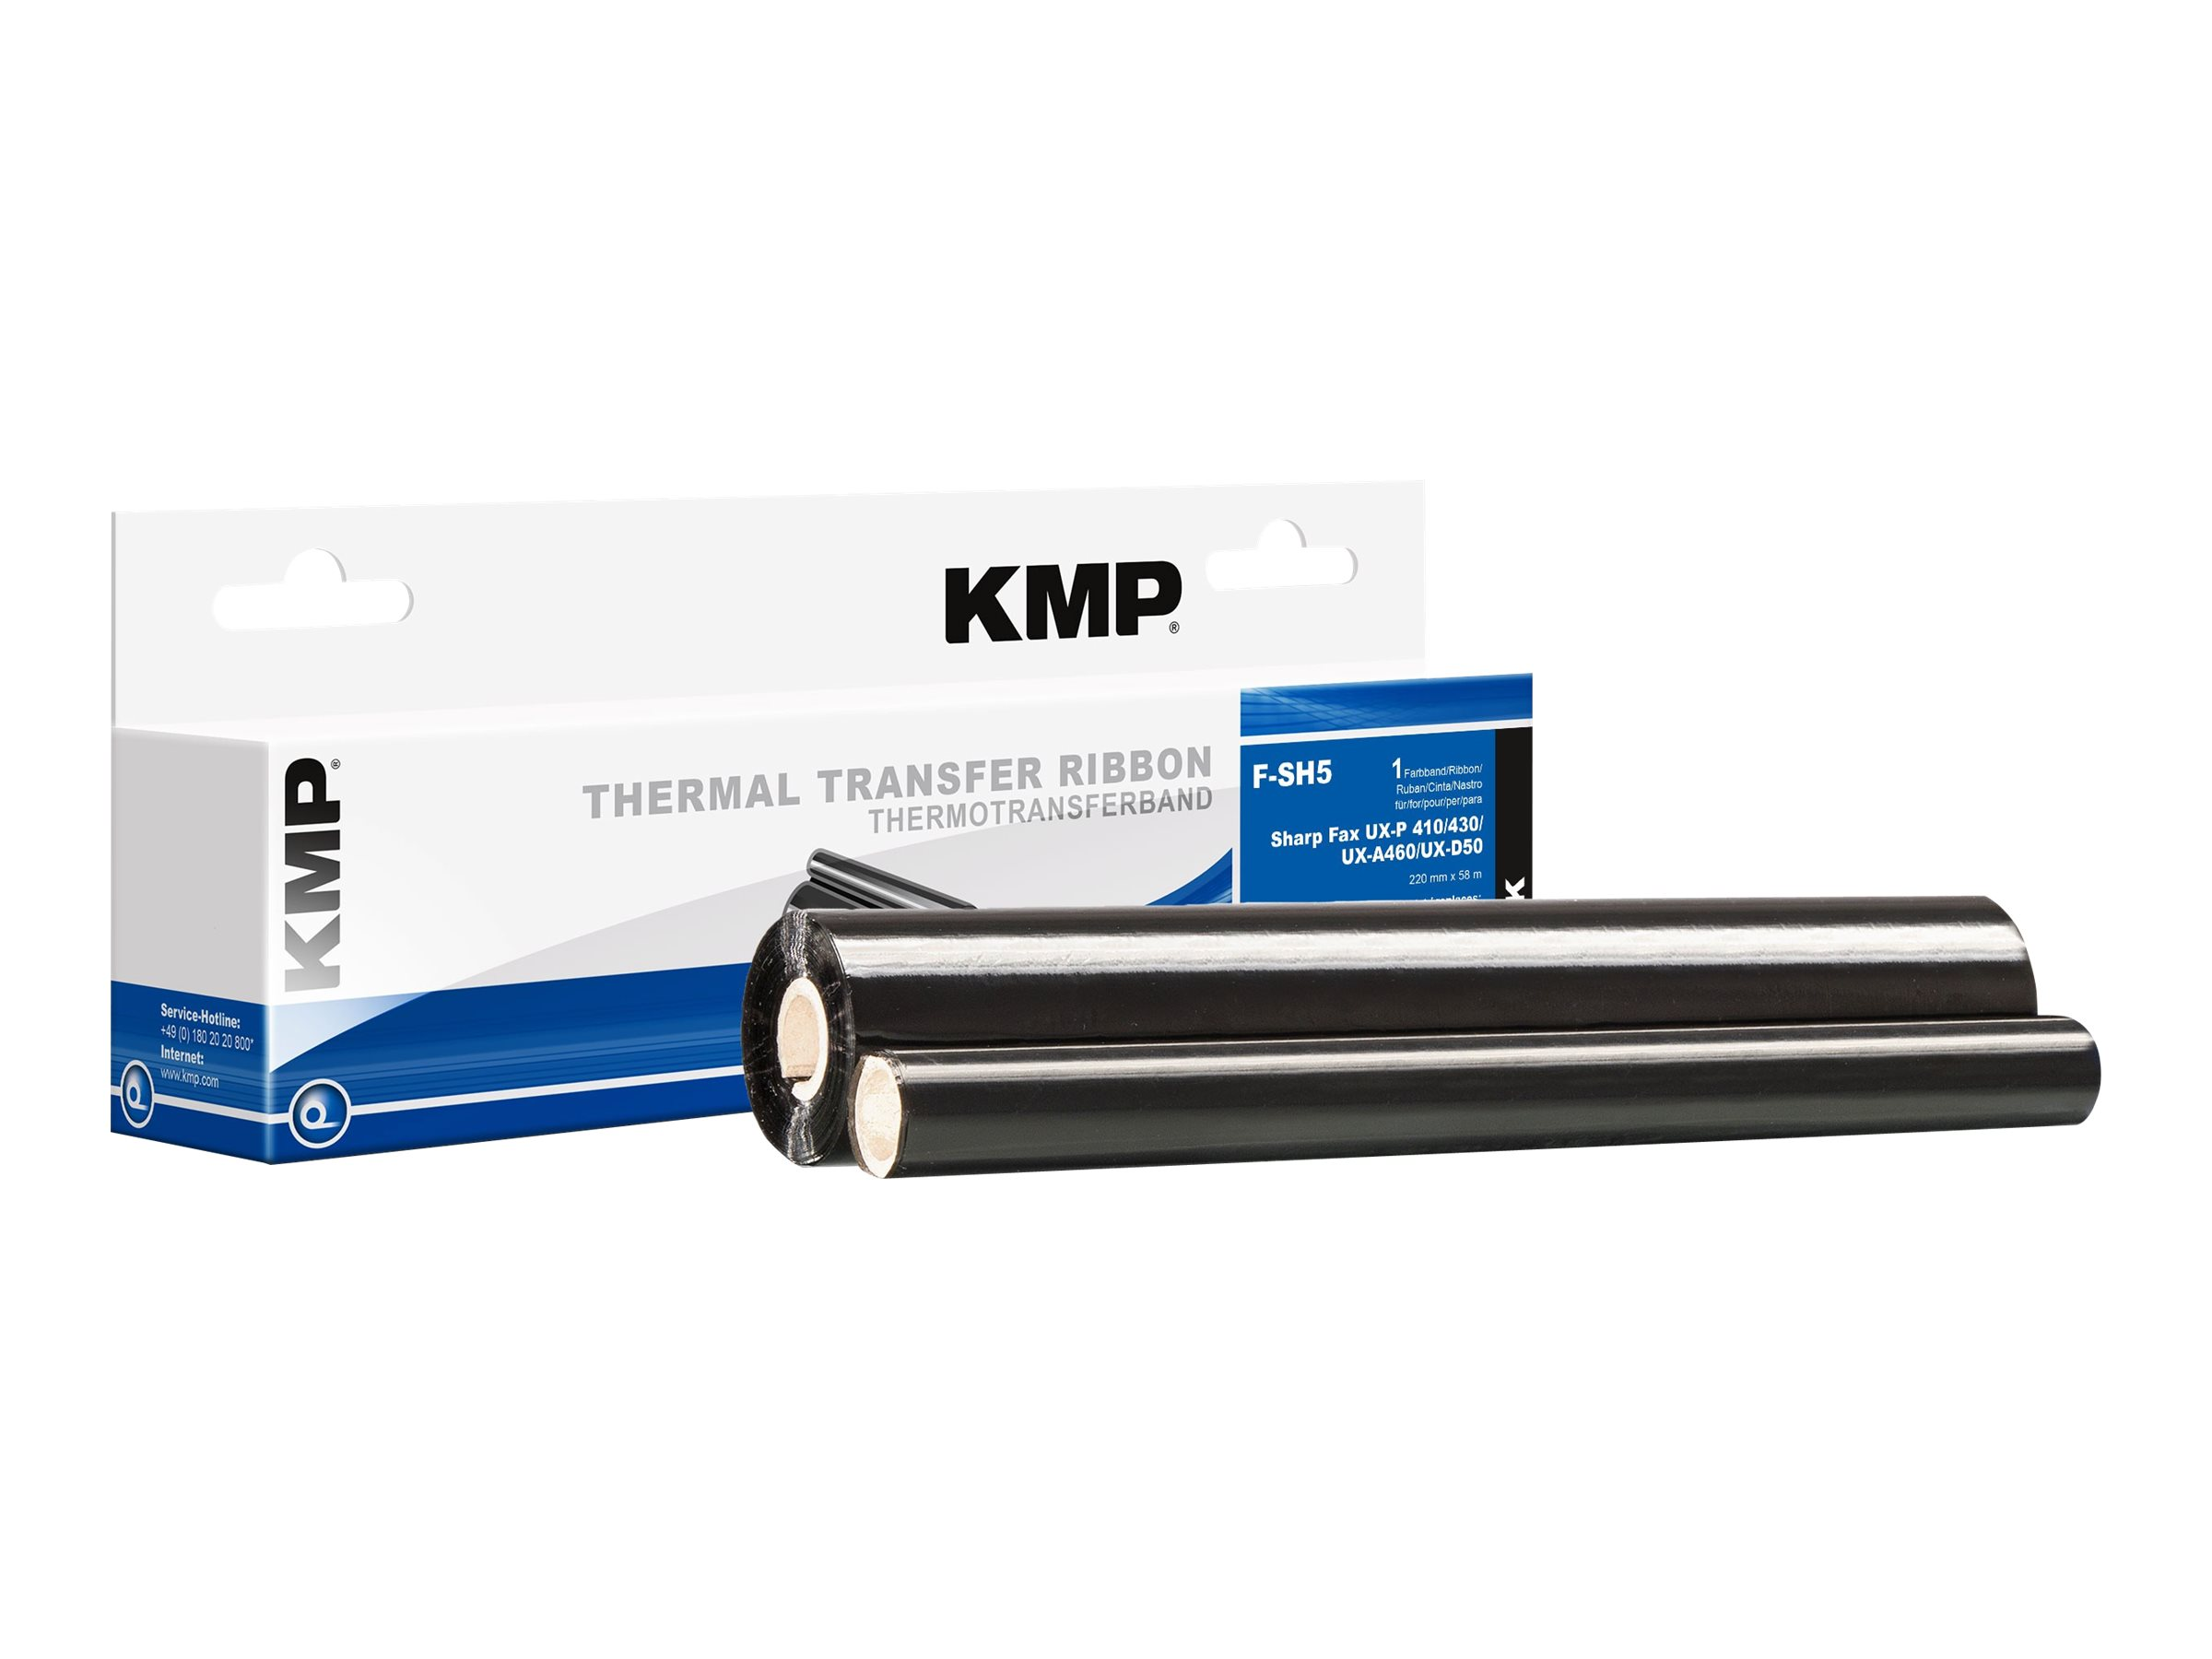 KMP F-SH5 - Schwarz - 220 mm x 58 m - Thermotransfer-Farbband (Alternative zu: Sharp UX-9CR) - für Sharp UX-A460, P410